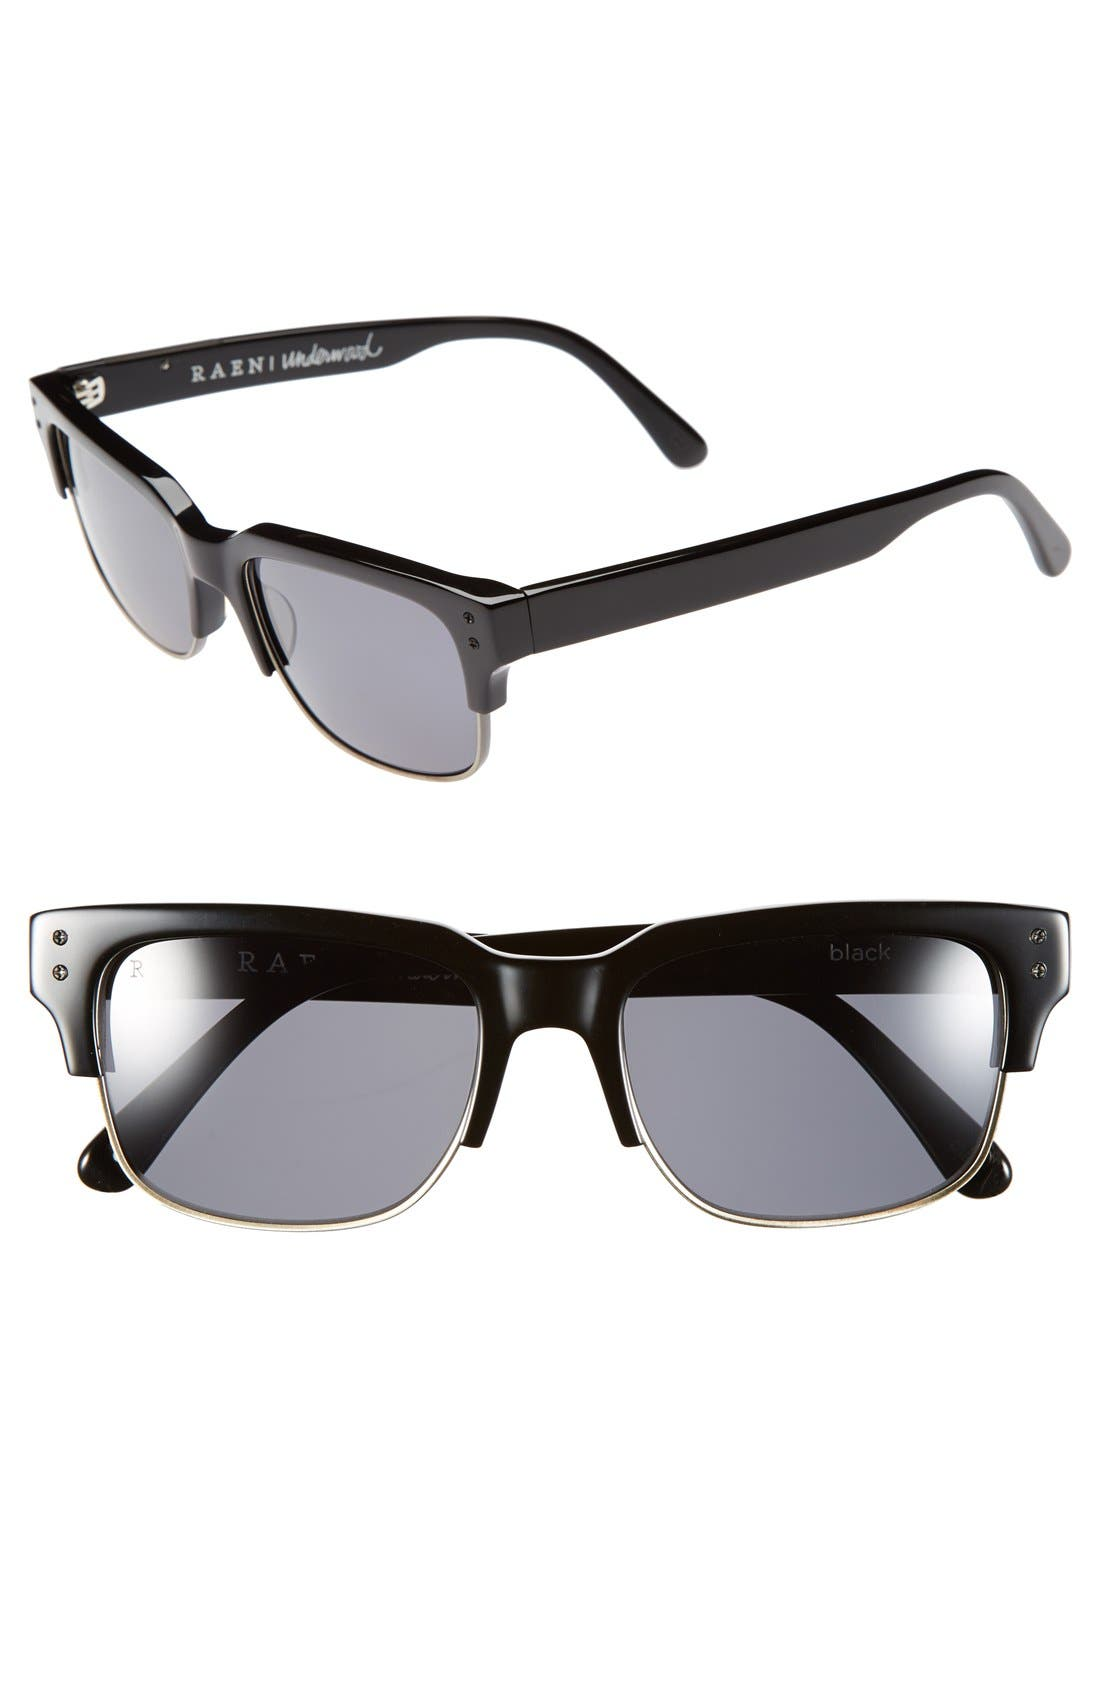 Main Image - RAEN 'Underwood' 53mm Polarized Sunglasses